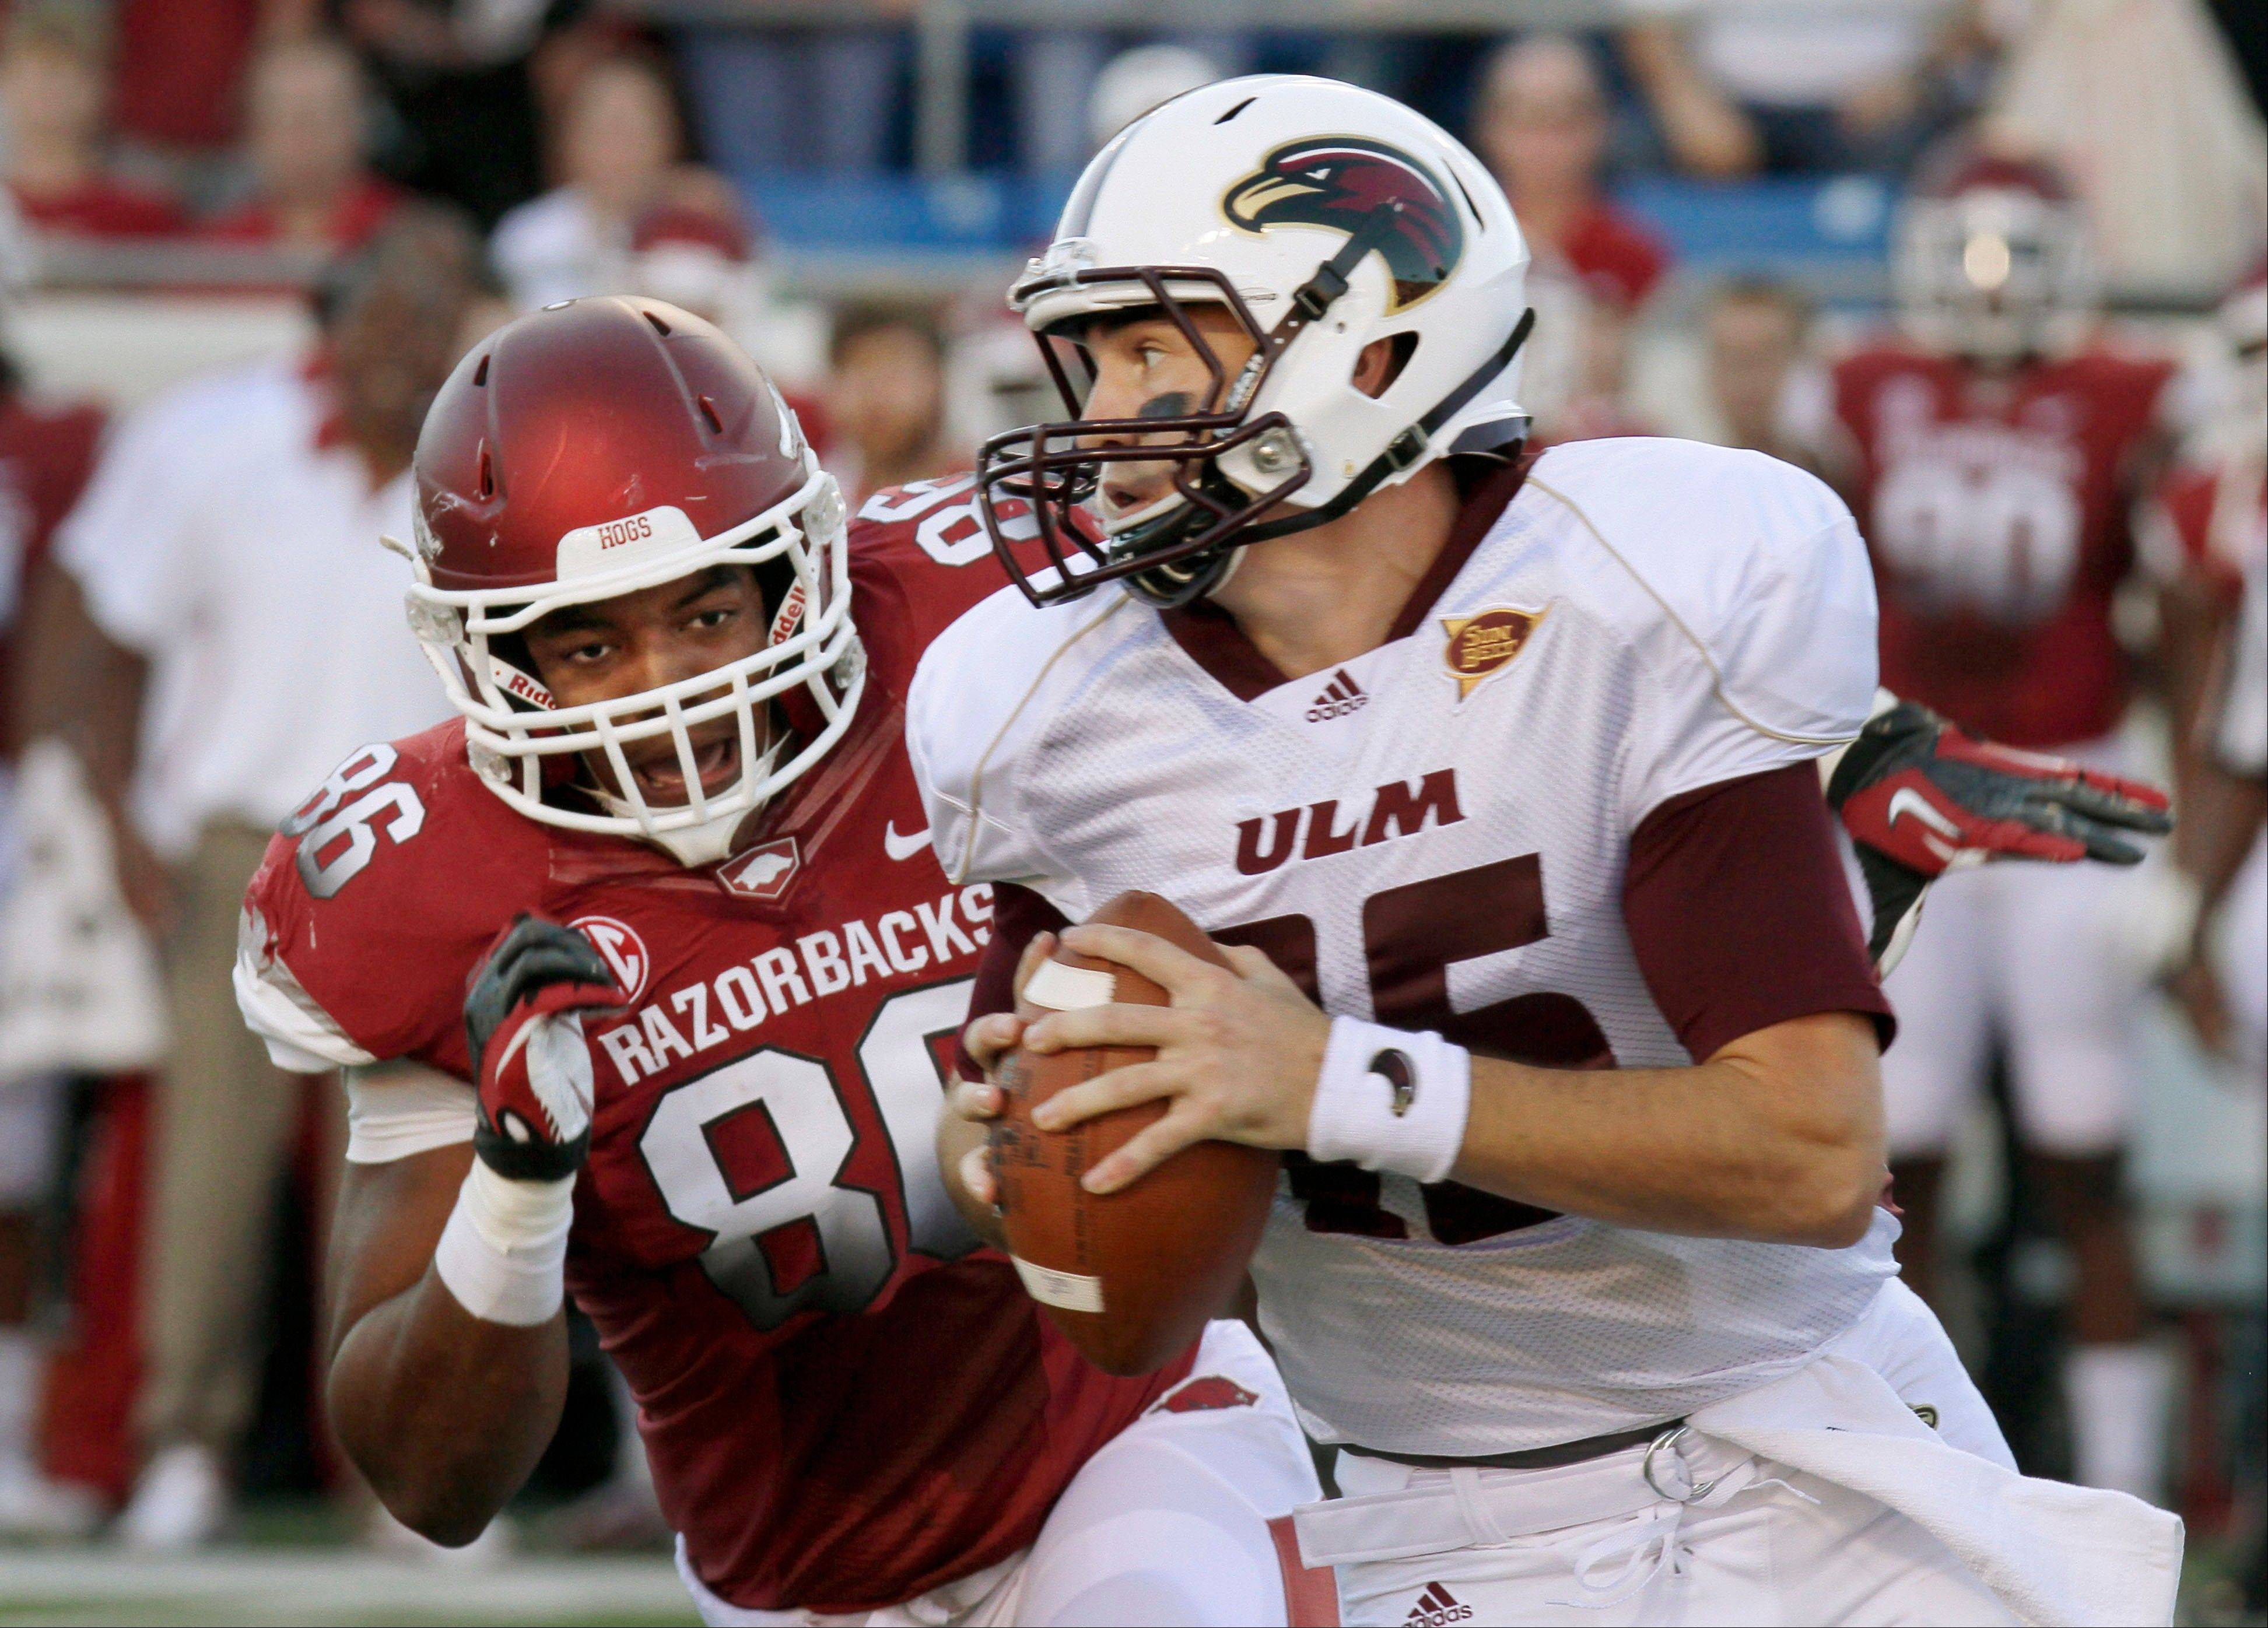 Arkansas defensive end Trey Flowers (86) pressures Louisiana Monroe quarterback Kolton Browning (15) during the first quarter Saturday in Little Rock, Ark.